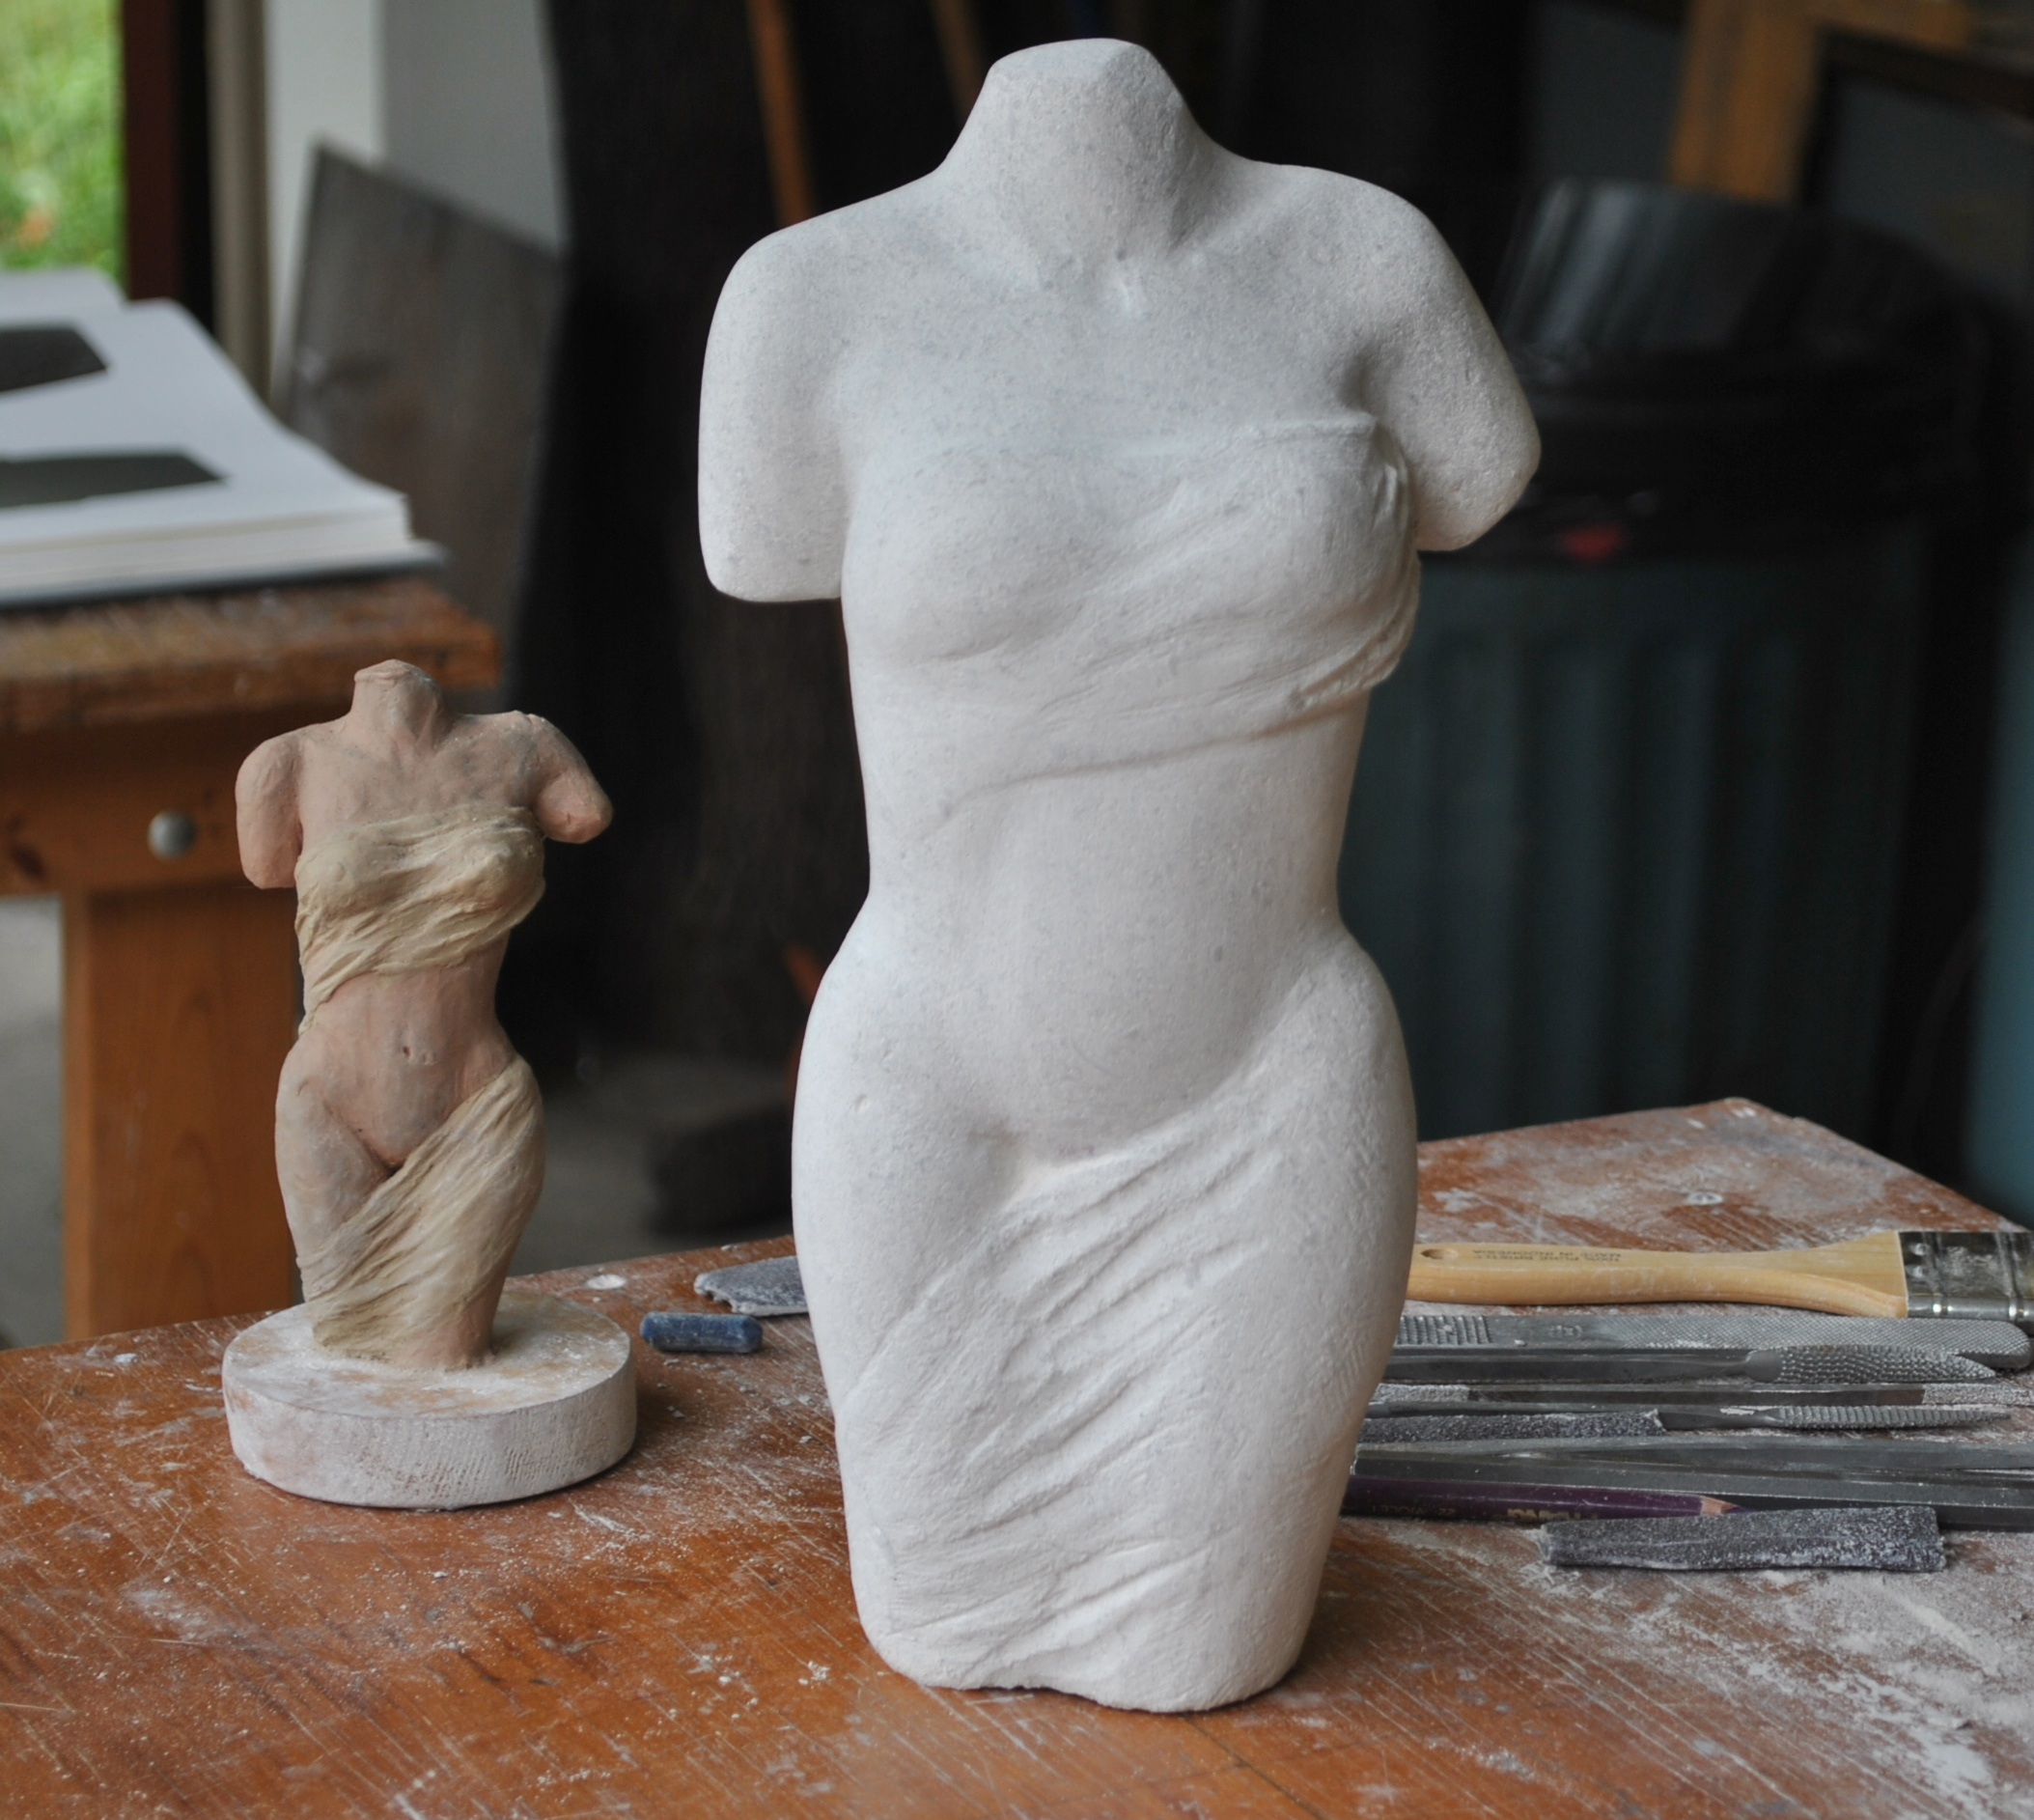 Her stone carving is nearing completion. Her clay model (maquette) is more clearly visible here.